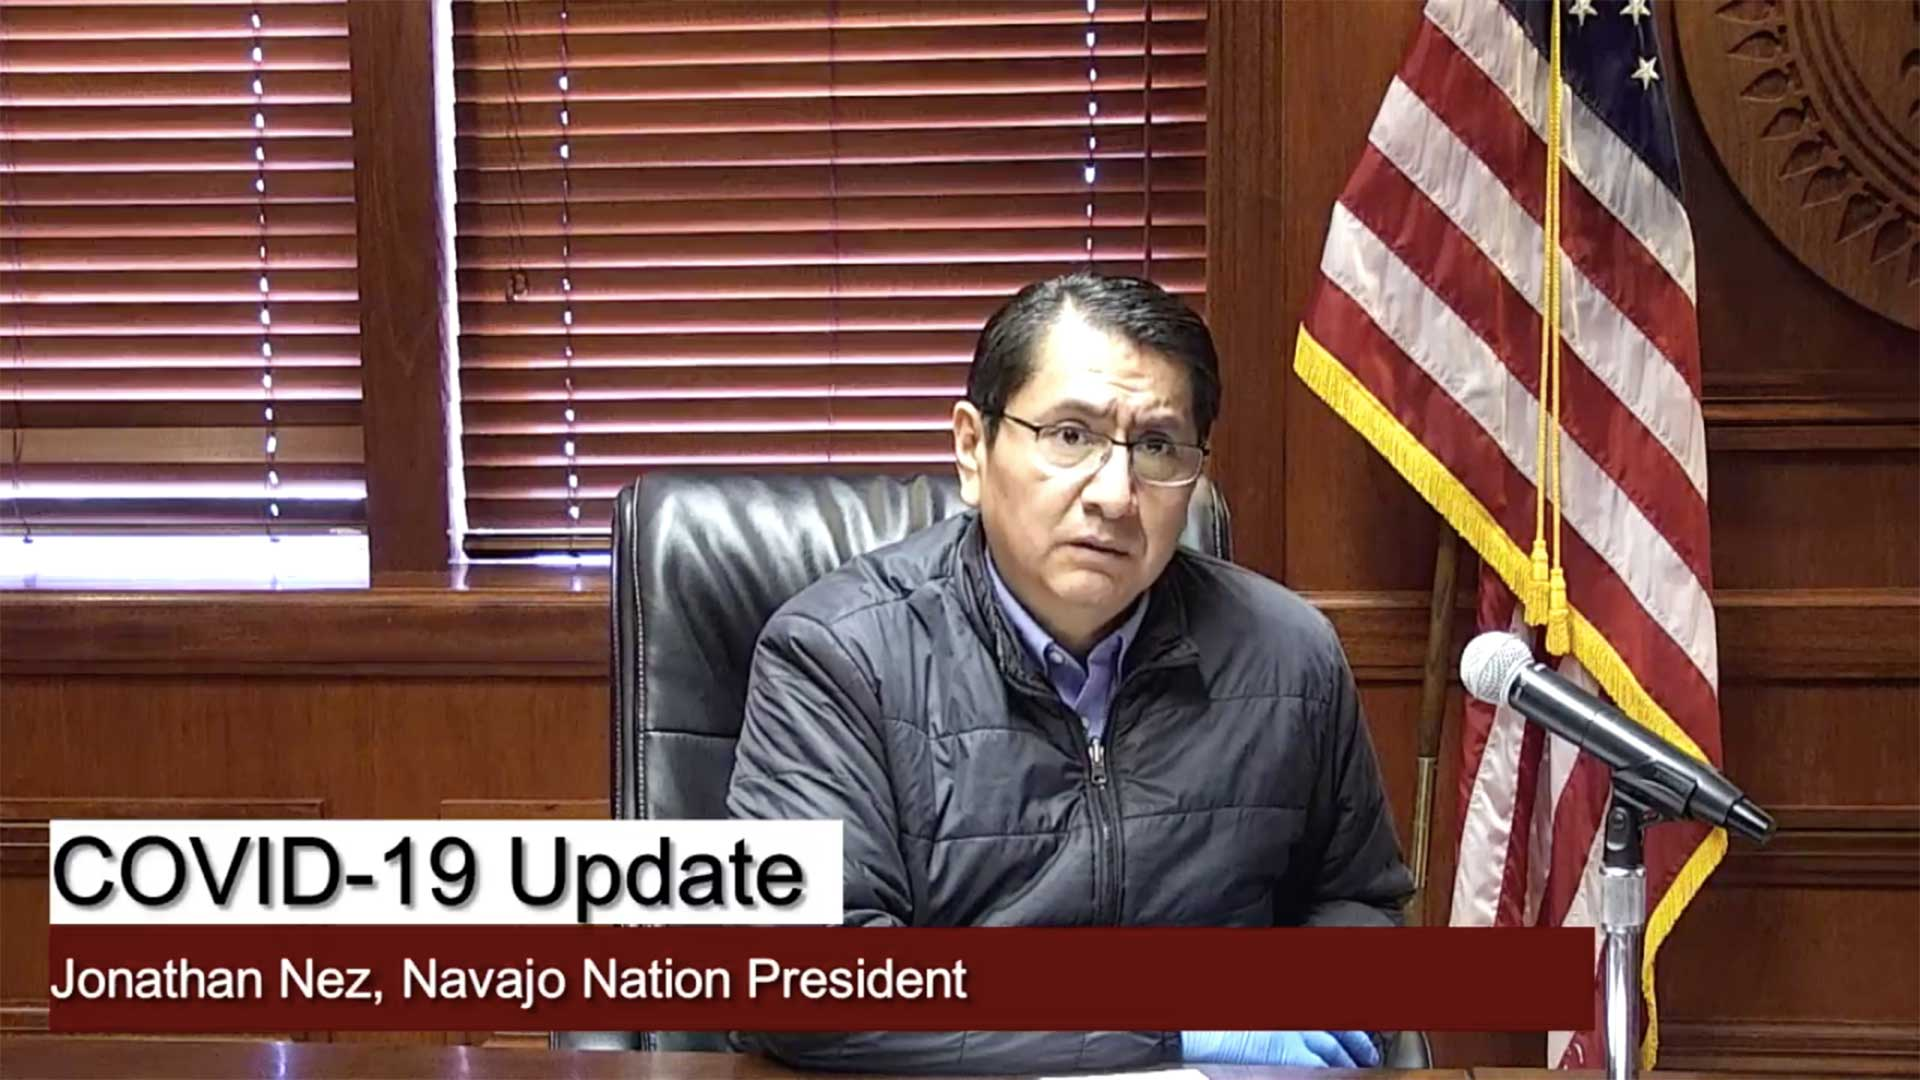 Navajo Nation President Jonathan Nez during the announcement of the curfew March 29, 2020, in this still image from a Facebook Live video.